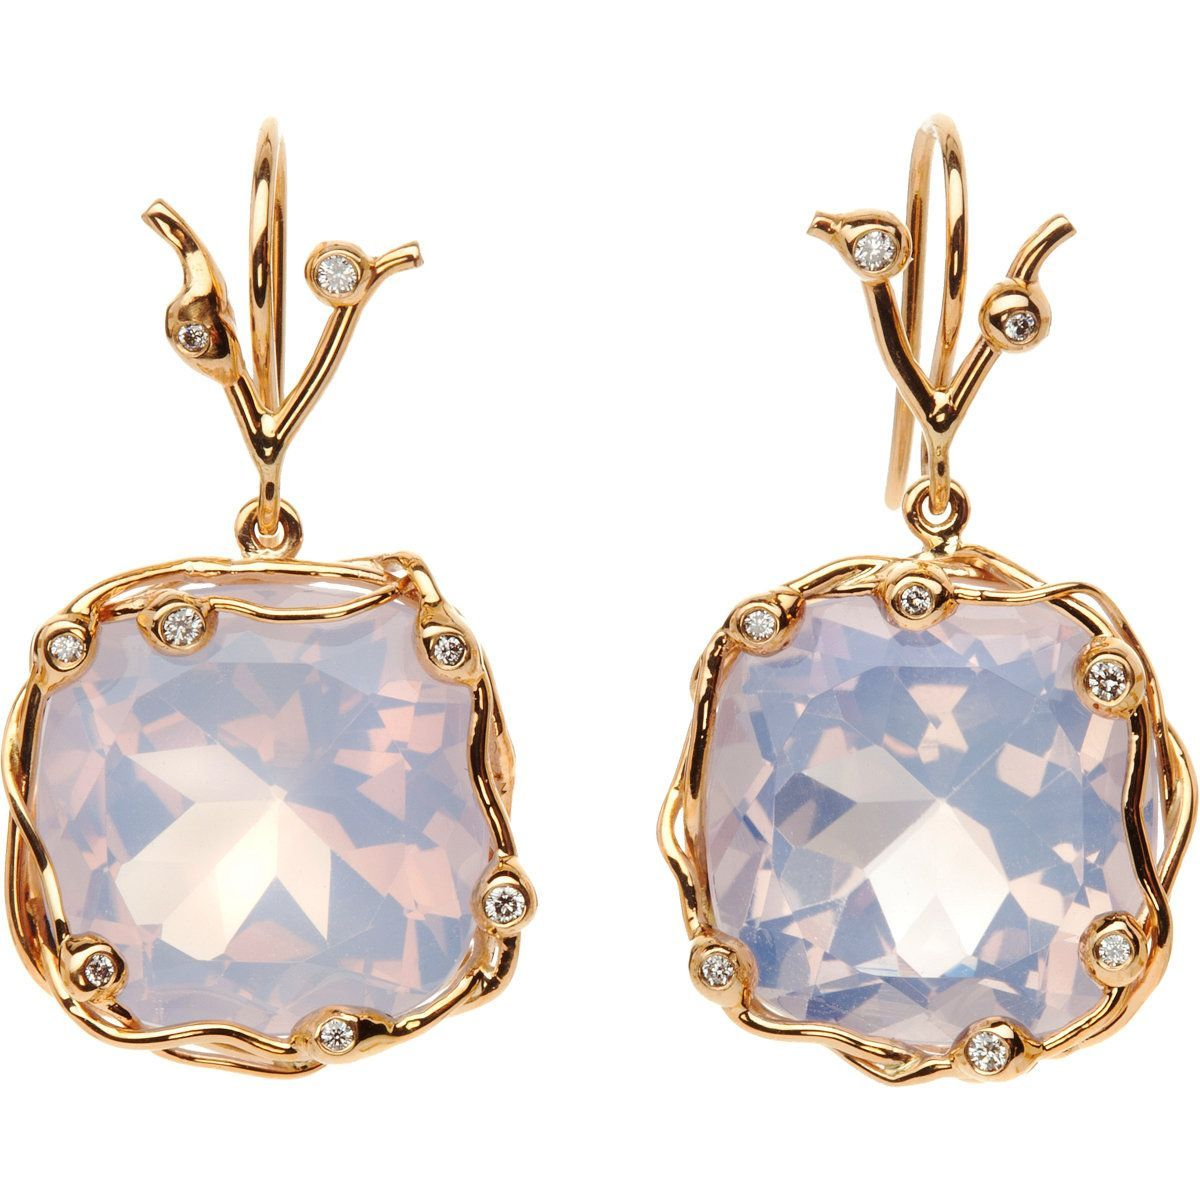 Dean Harris lilac quartz medium drop earrings reflect the blush and lavender tones, while creating tension with the peach lip color.  Earrings via Barney's